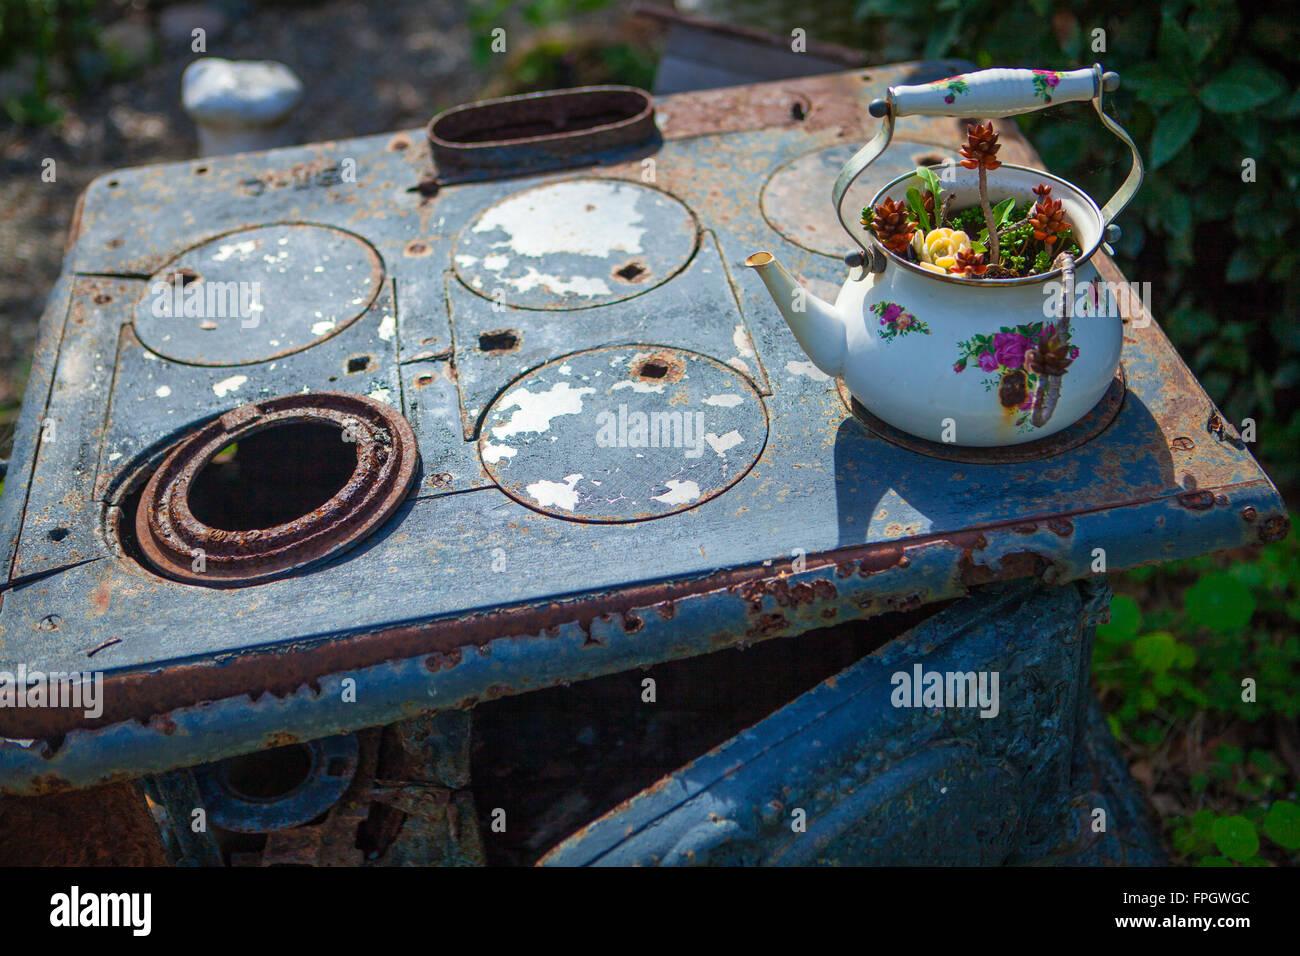 old stove and teapot planter in garden, Spellbound Herbs Gift Shop and Garden, Cambria, California - Stock Image